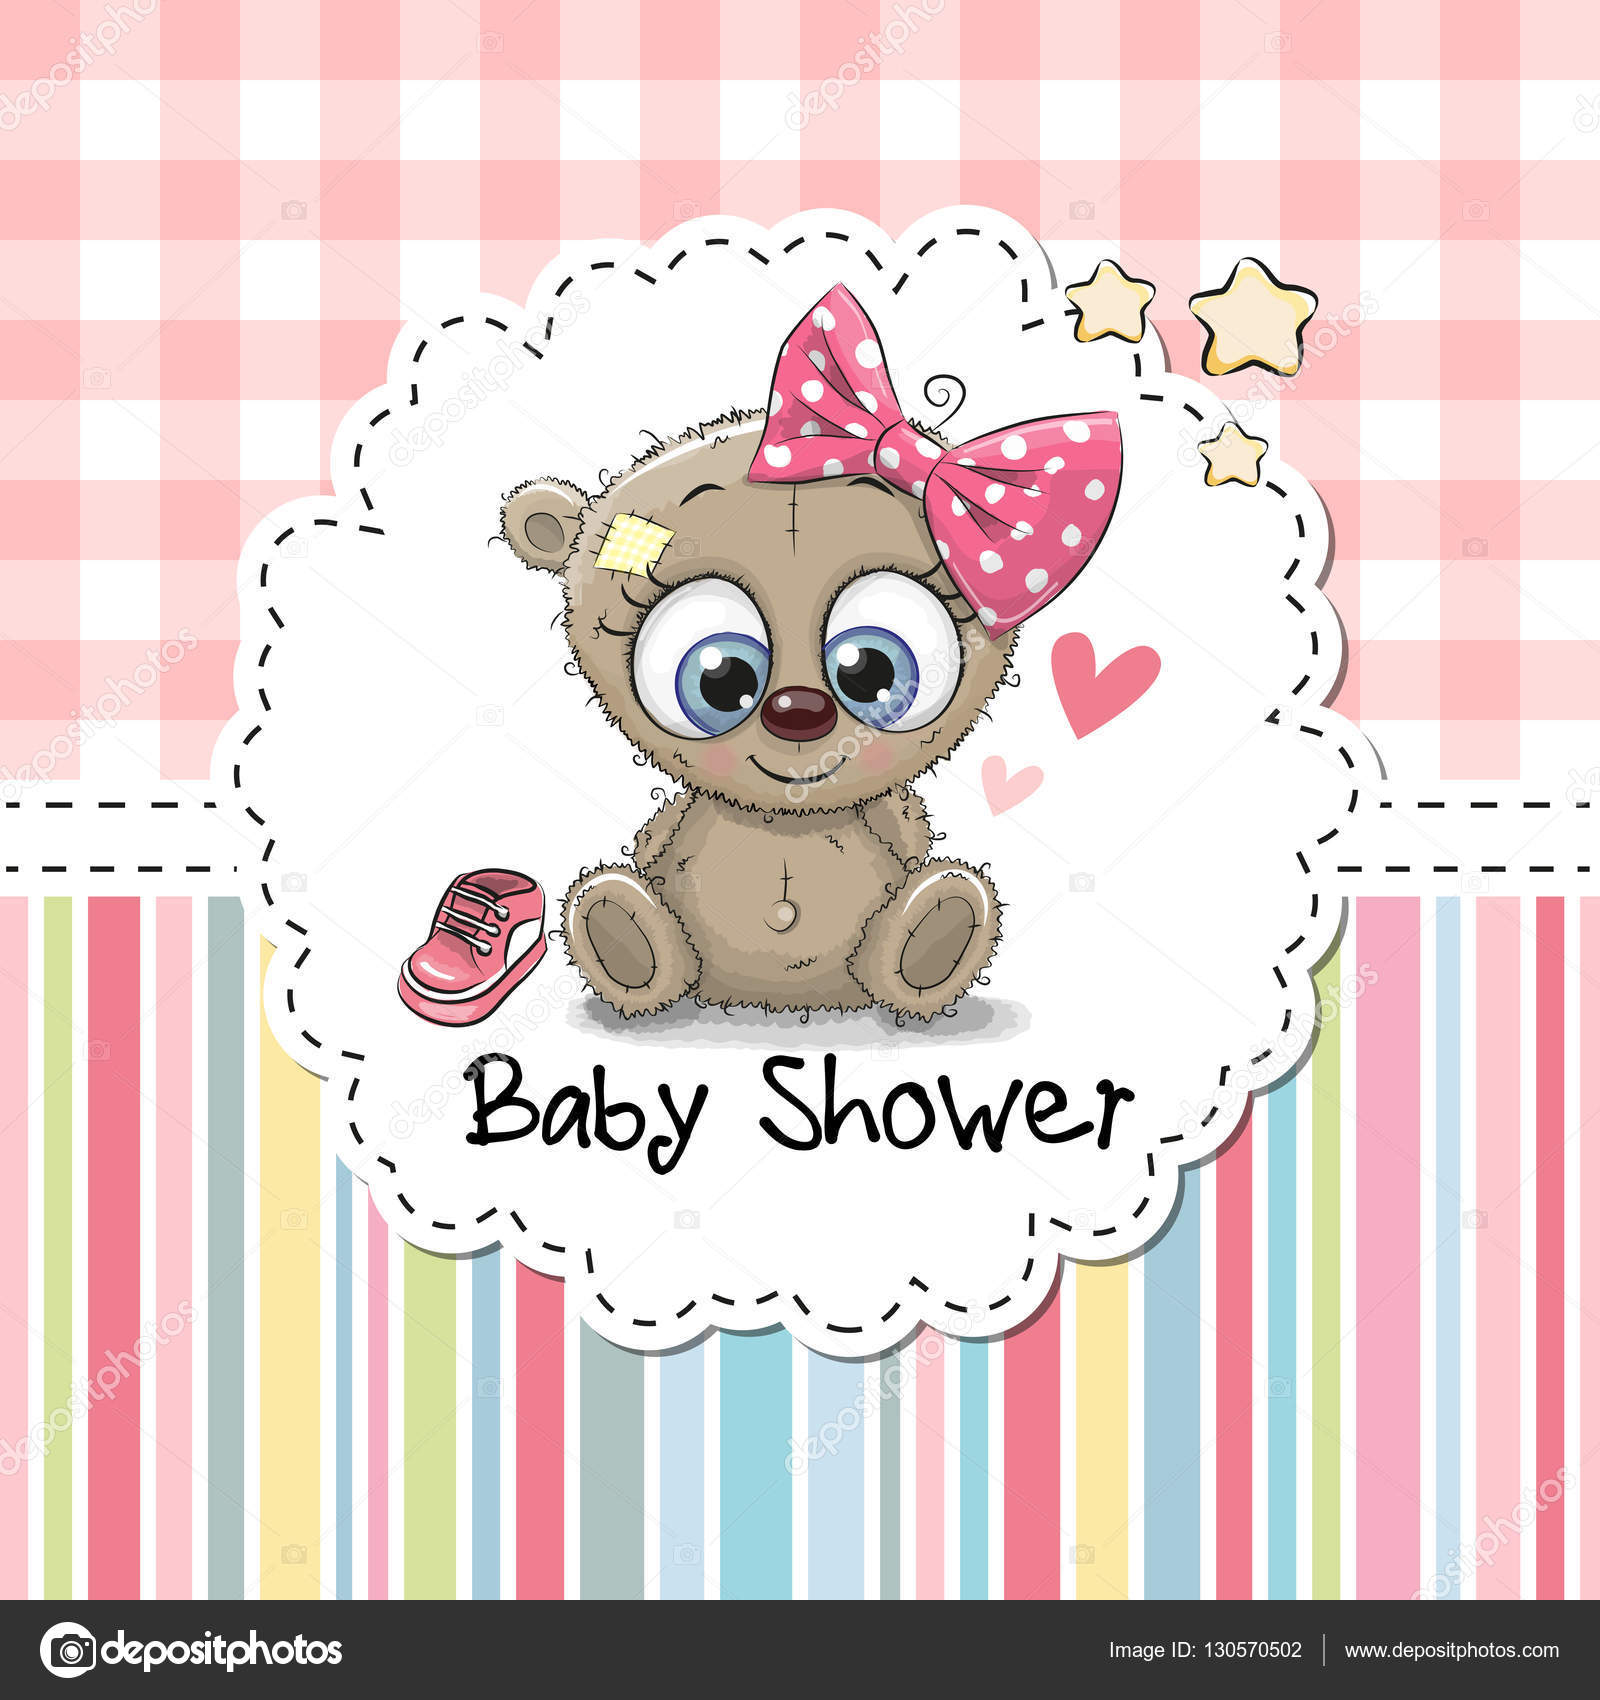 Baby shower greeting card with bear stock vector reginast777 baby shower greeting card with cute cartoon teddy bear girl vector by reginast777 m4hsunfo